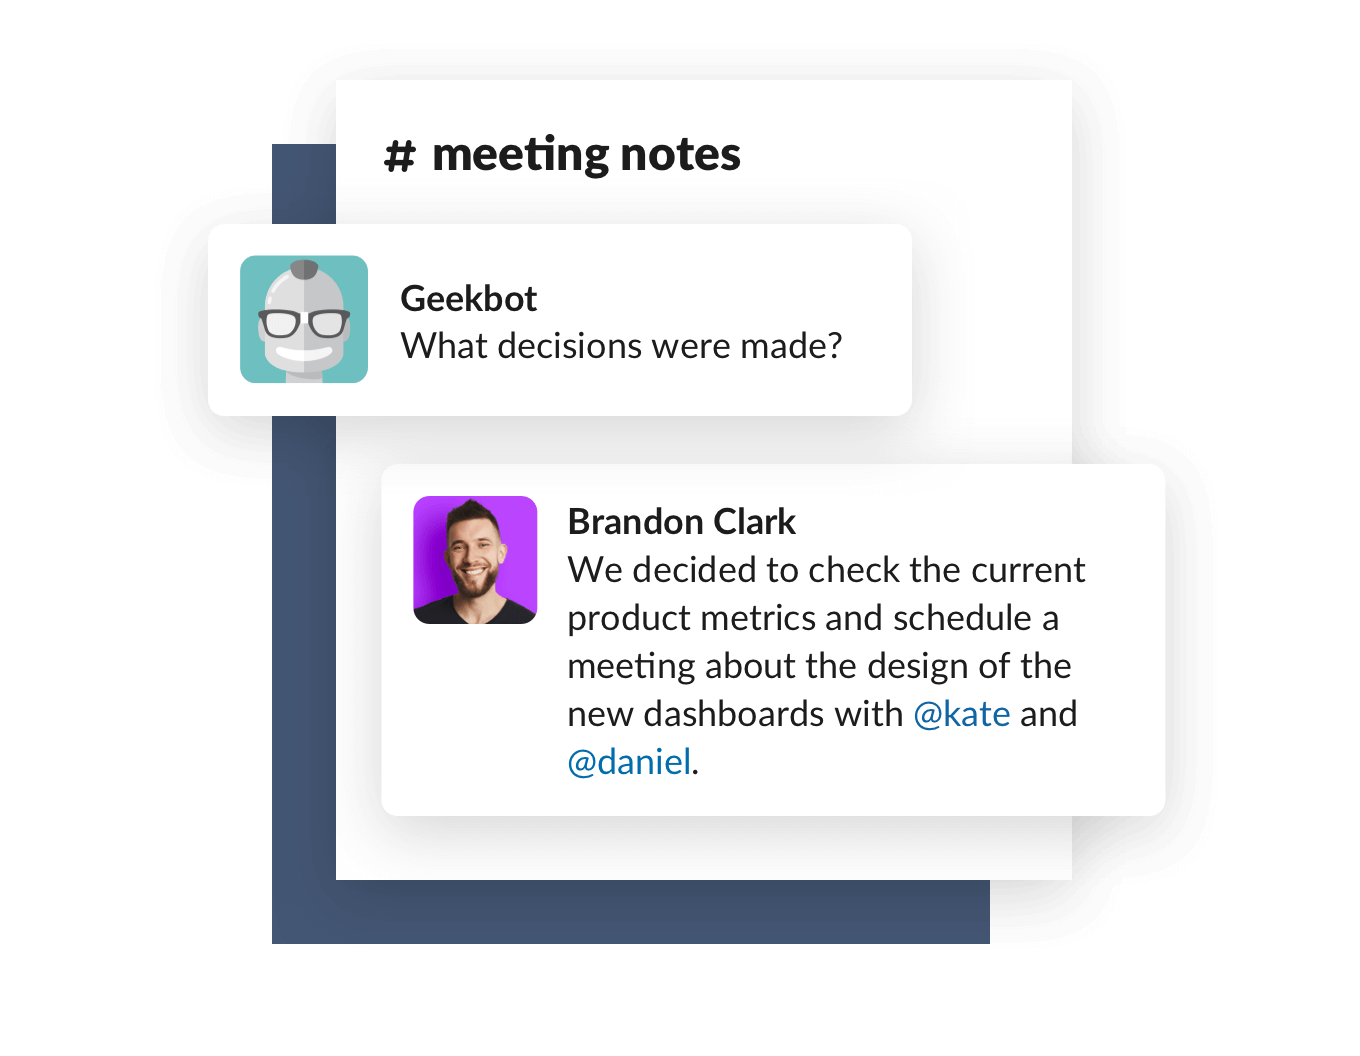 meeting-notes-report-bot-interaction